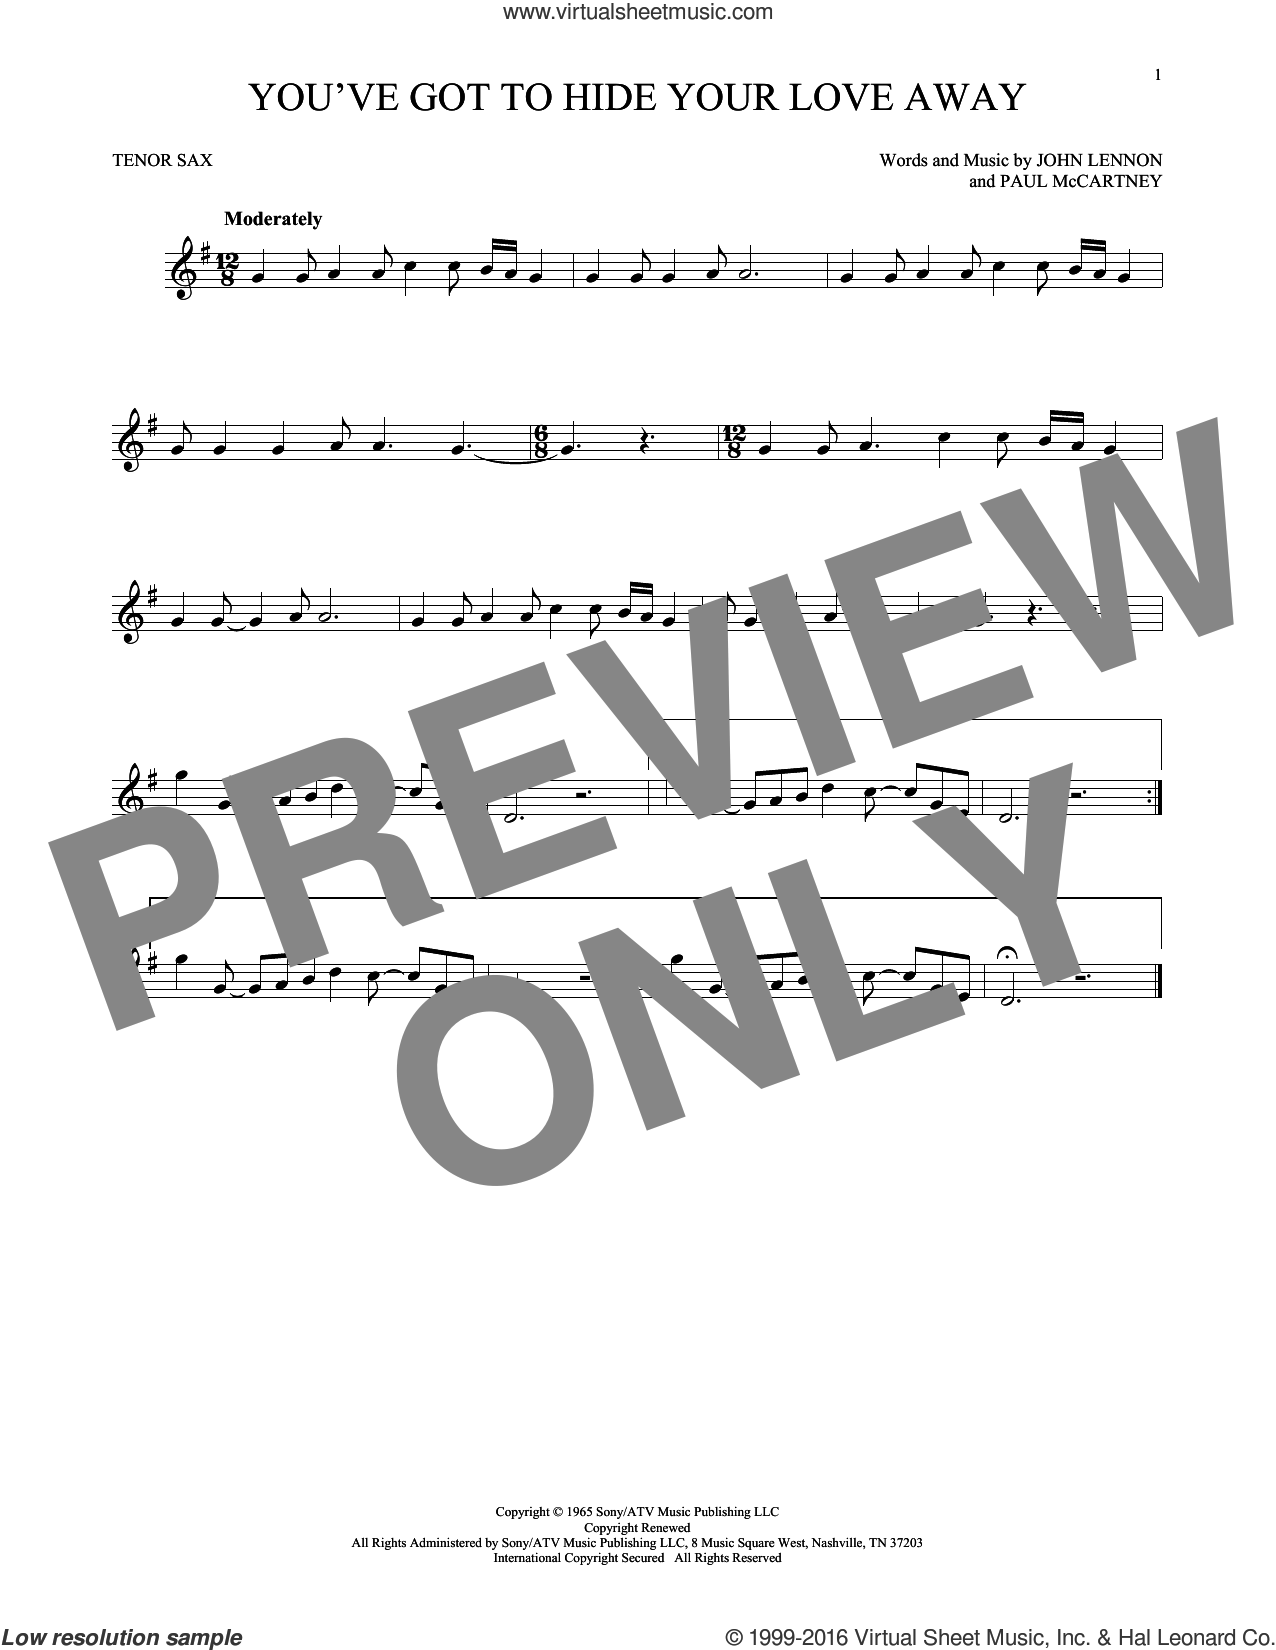 You've Got To Hide Your Love Away sheet music for tenor saxophone solo by Paul McCartney